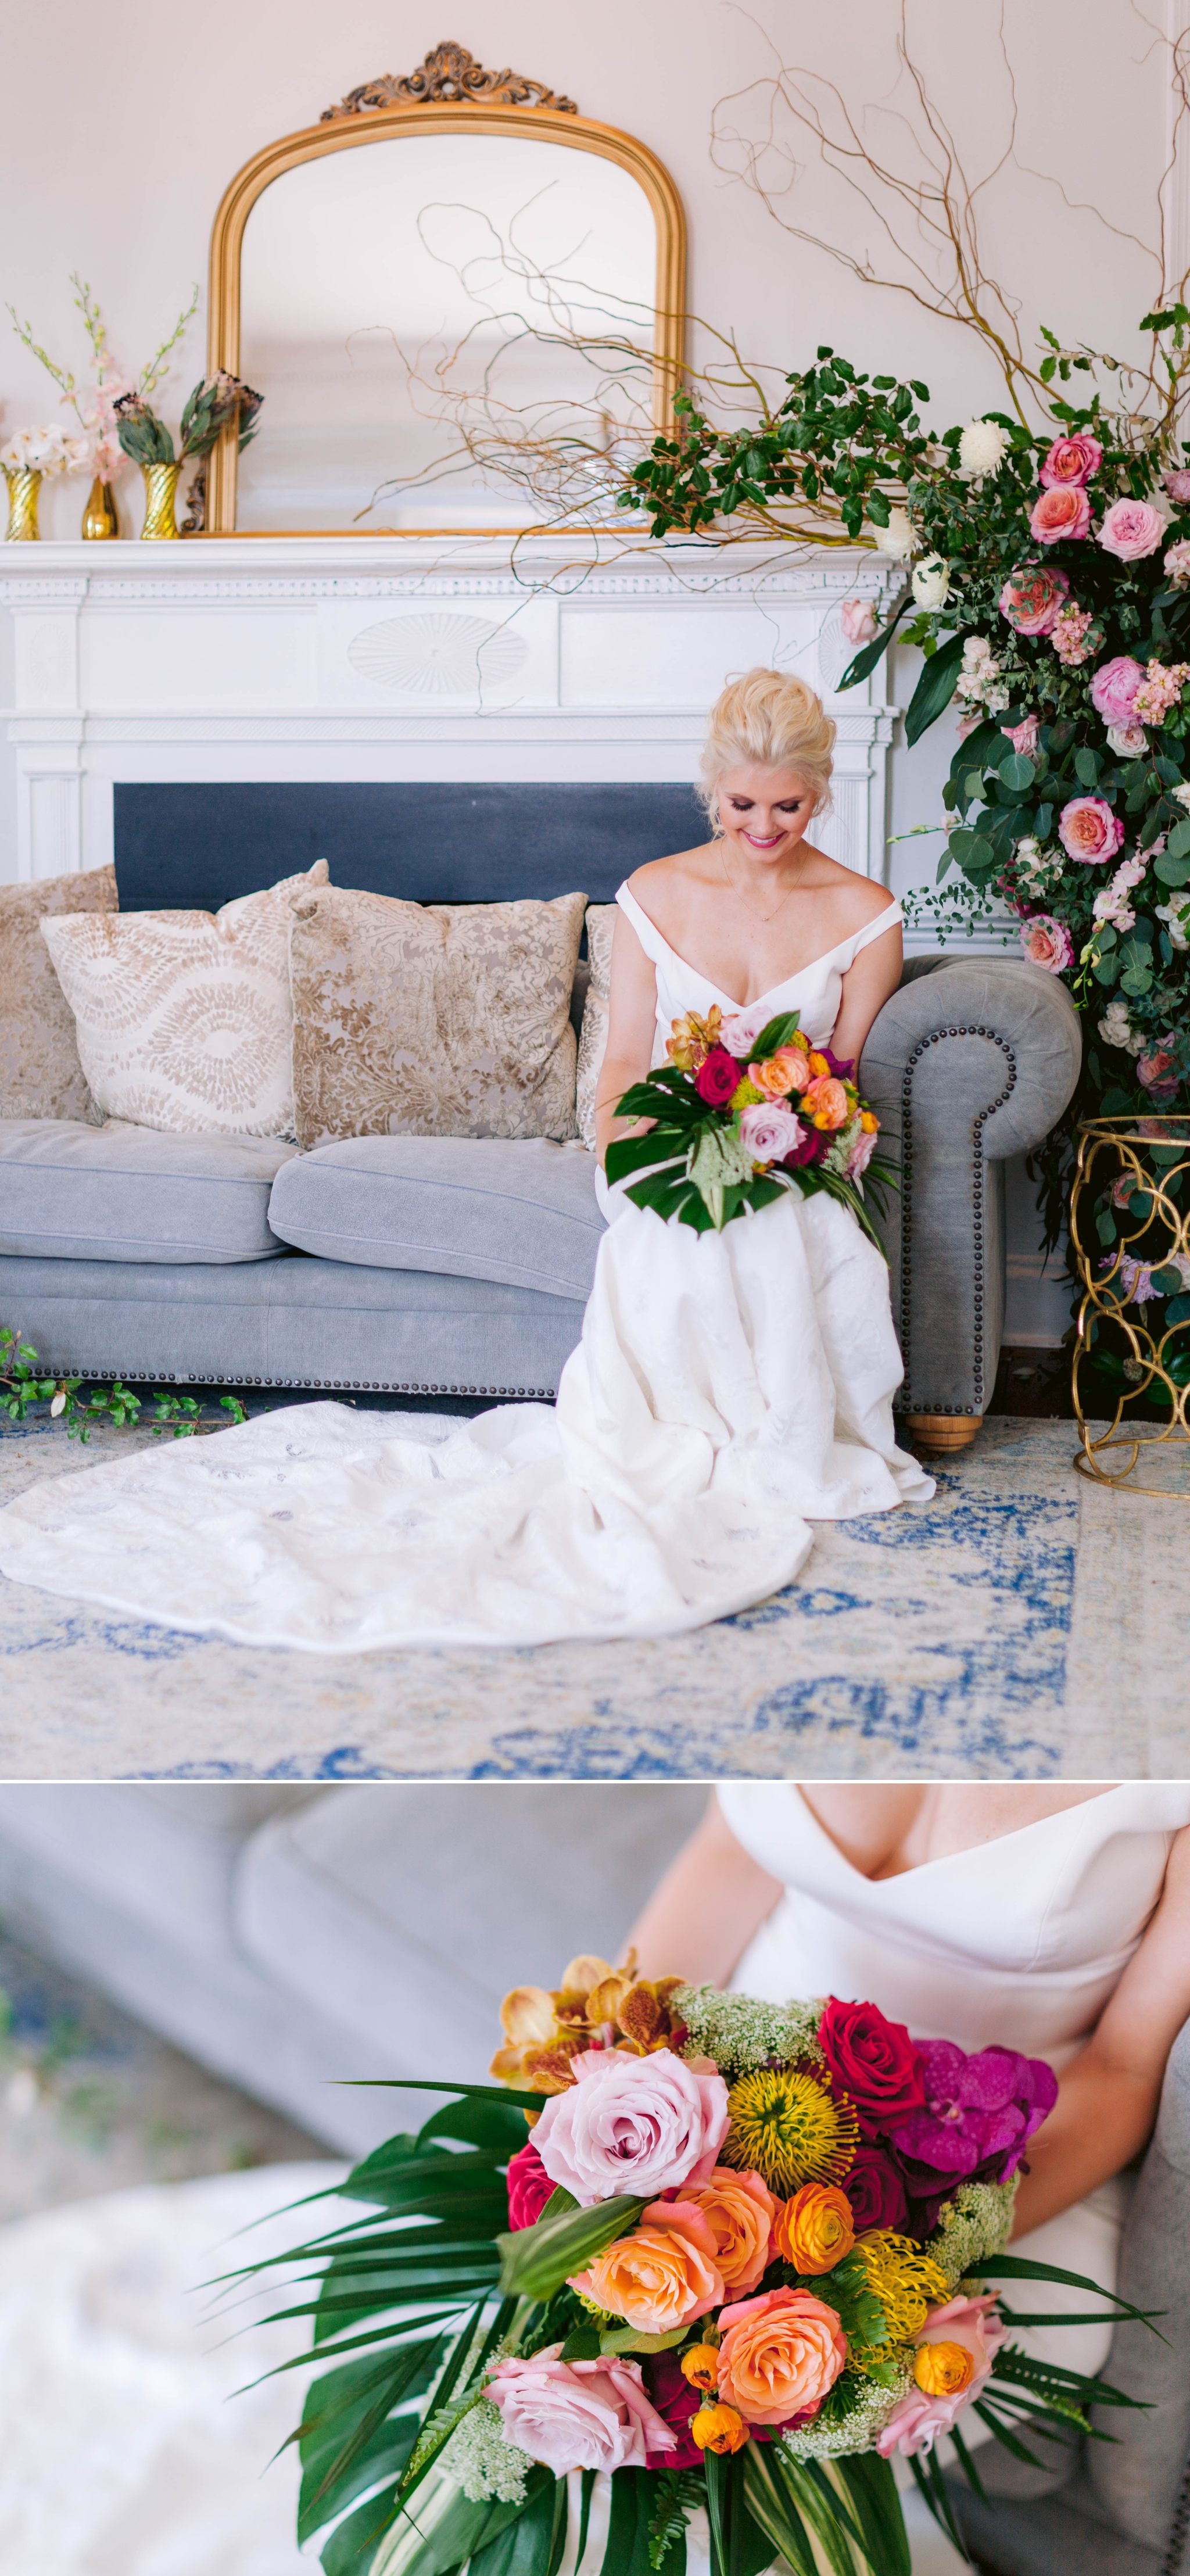 Bridal Portraits indoors on a light blue sofa with gorgeous florals draped - Navy, Green, Gold and Berry colored Tropical Wedding Inspiration for your Wedding in Hawaii! - Honolulu, Oahu, Hawaii Photographer - Fine Art Film Photography - Light and Airy